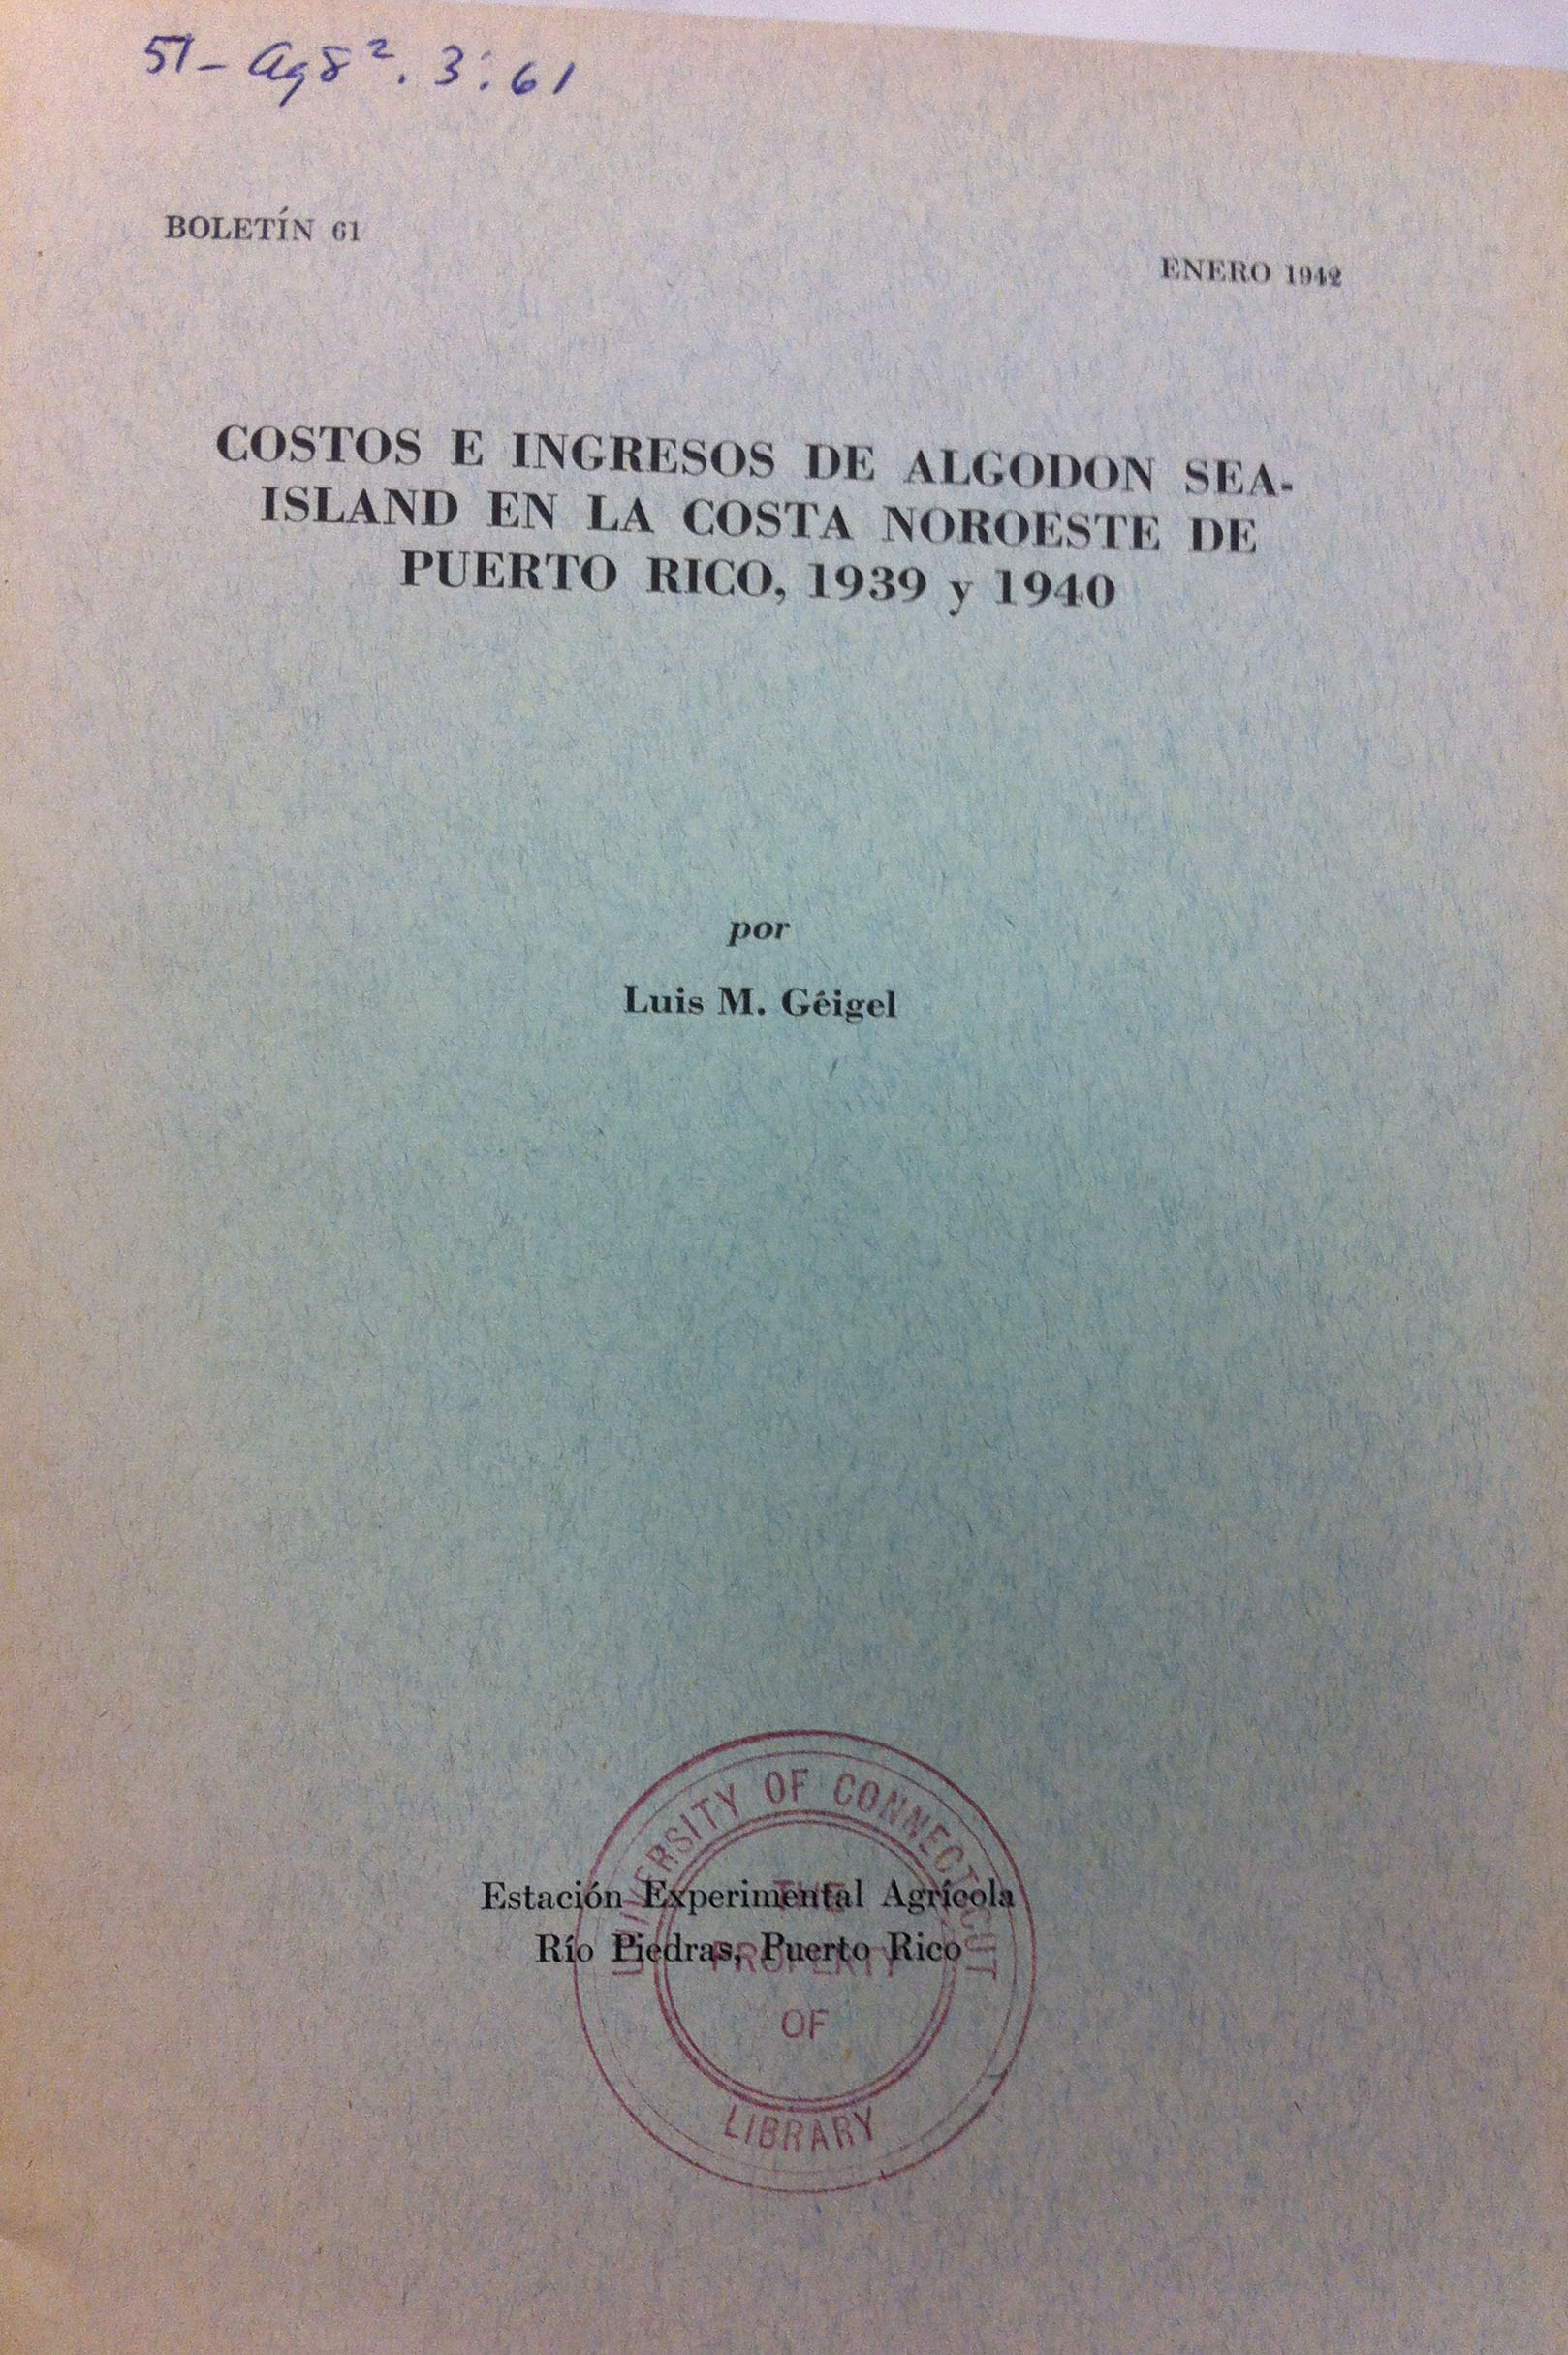 Publication about cotton by Luis A. Géigel